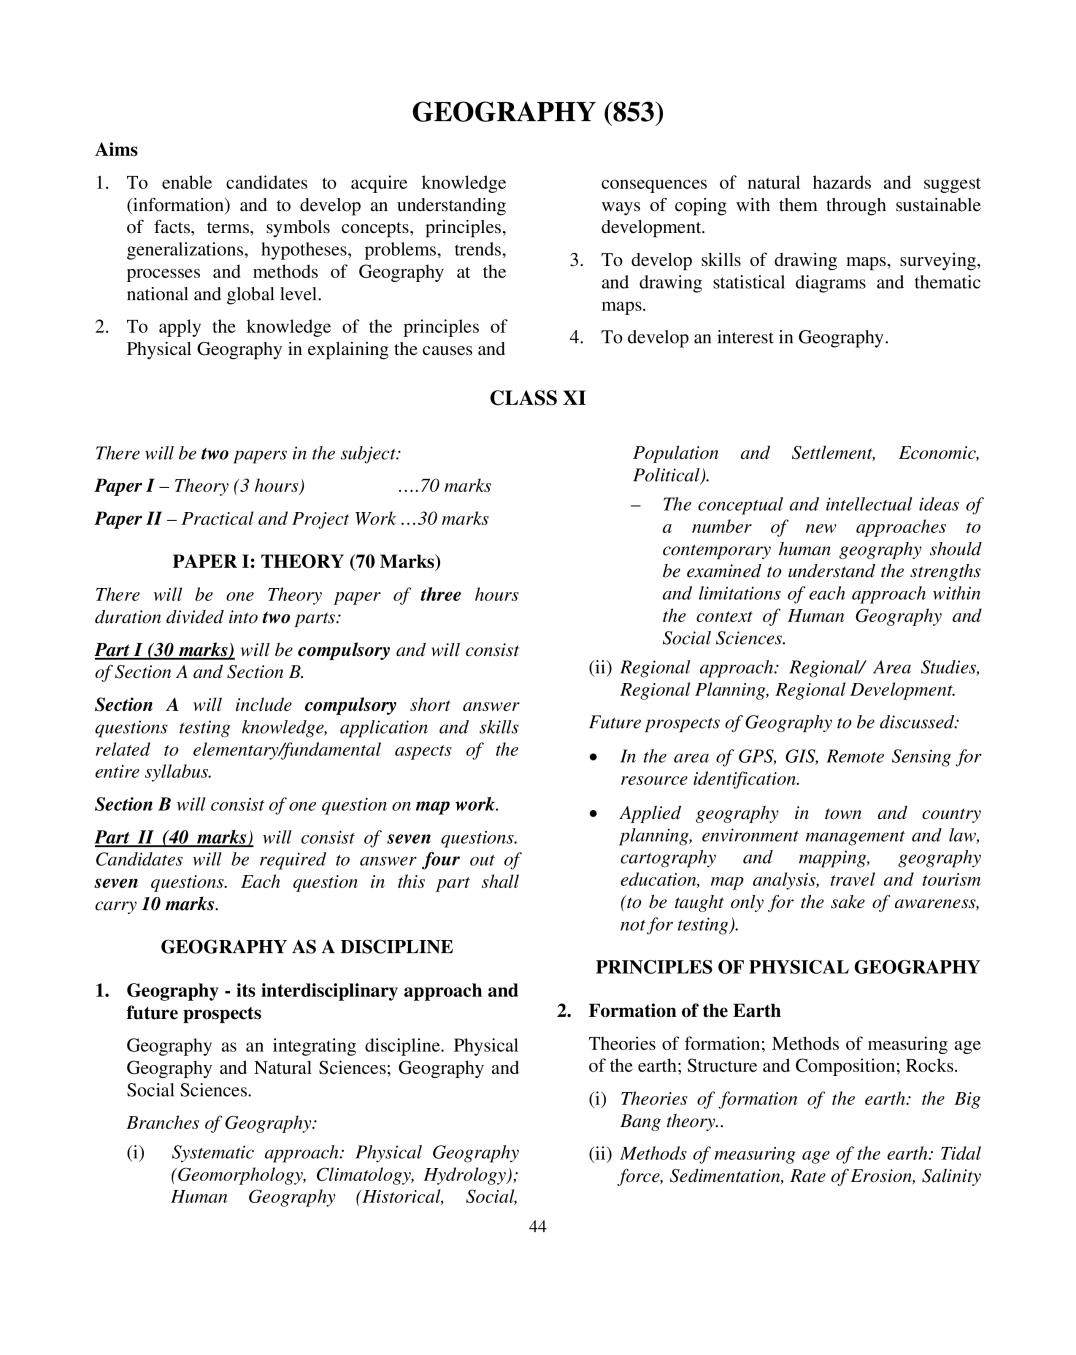 ISC Geography Syllabus 2020 - 2021 for Class 11, Class 12